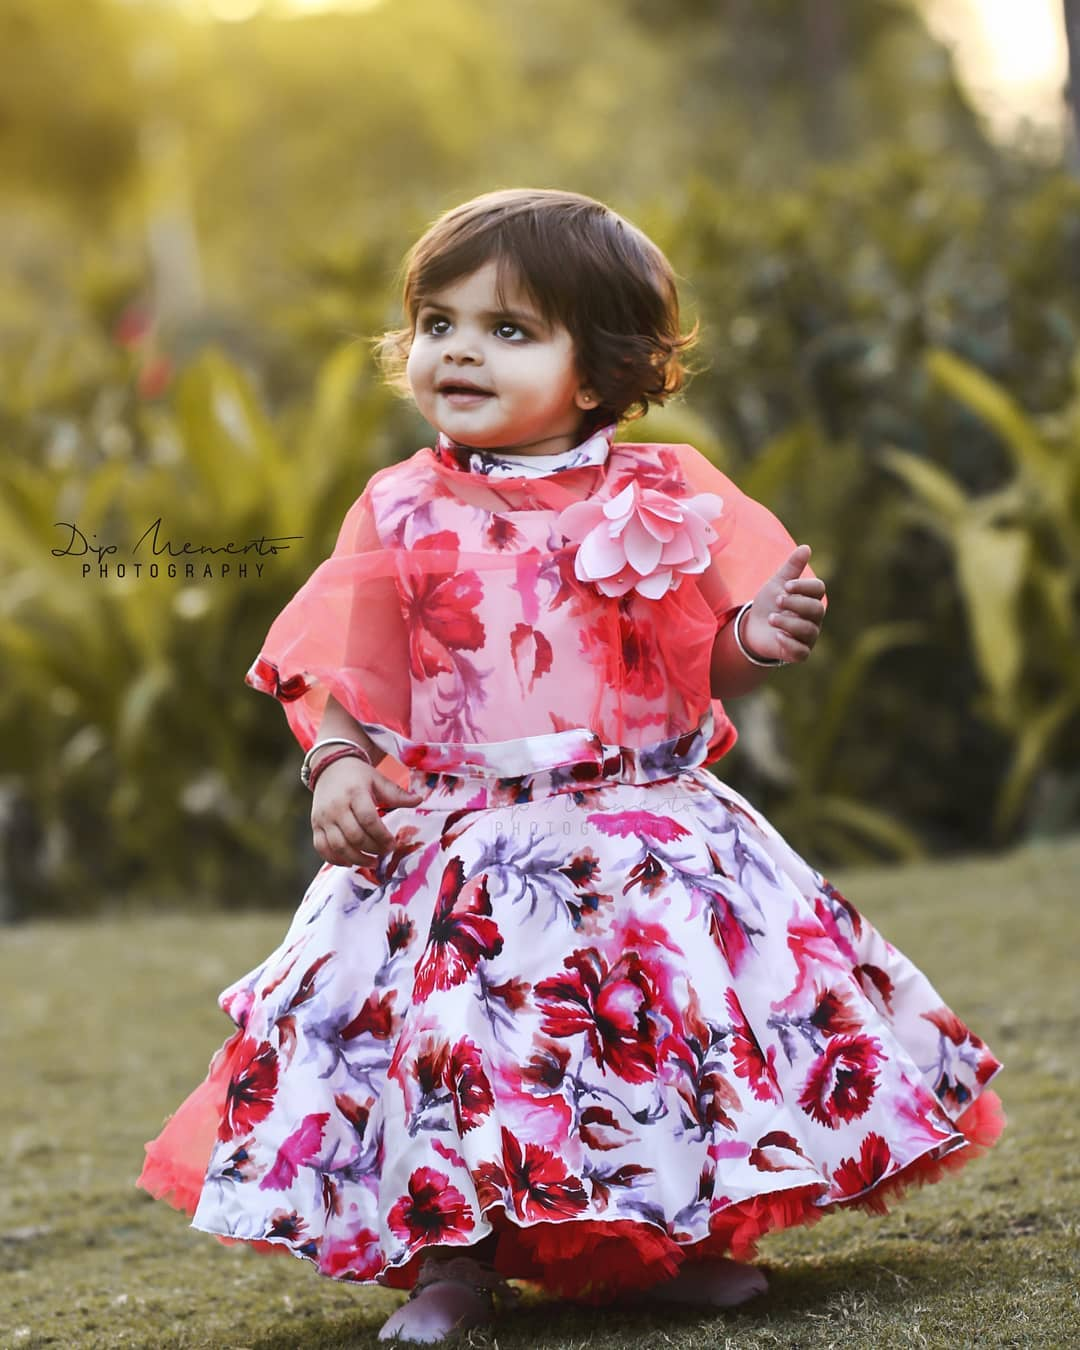 All little girls should be told they are pretty. ✨✨✨✨✨✨✨✨✨✨✨✨✨✨✨ 📷 Babyshoot by : Dip thakkar |  @dip_memento_photography @dipthakkar.clicker  #dipmementophotography ✨✨✨✨✨✨✨✨✨✨✨✨✨✨✨ #kidsphotography #parenting #motherhood#baby #babies #babygirl #little #babygirl #instababy #babys #babycute #lovesmootiepie #beautifulbaby #cutie #berrycurly #birth #beauty #babybump #mommylife #momlife #mommy #kids #babyfever #babiesofinstagram #love #blackgirlmajic #newborn #outfit #newmom #doicontest17